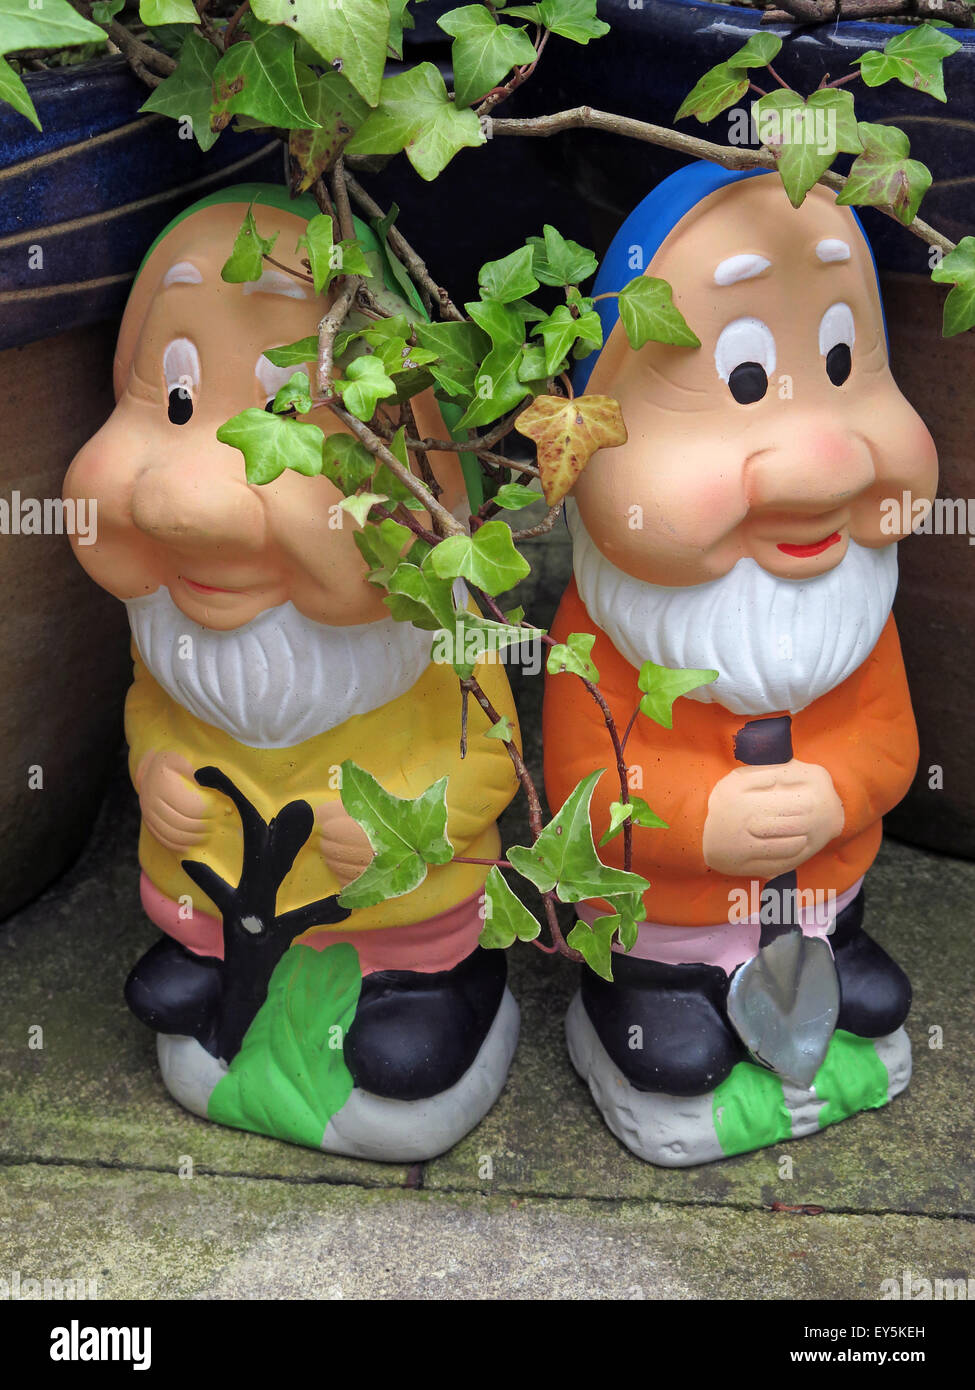 Two comical,with,ivy,comedy,funny,vulgar,plants,spade,hat,fool,foolish,ornament,world,garden Gnomes,Gardeners World,GoTonySmith,Buy Pictures of,Buy Images Of